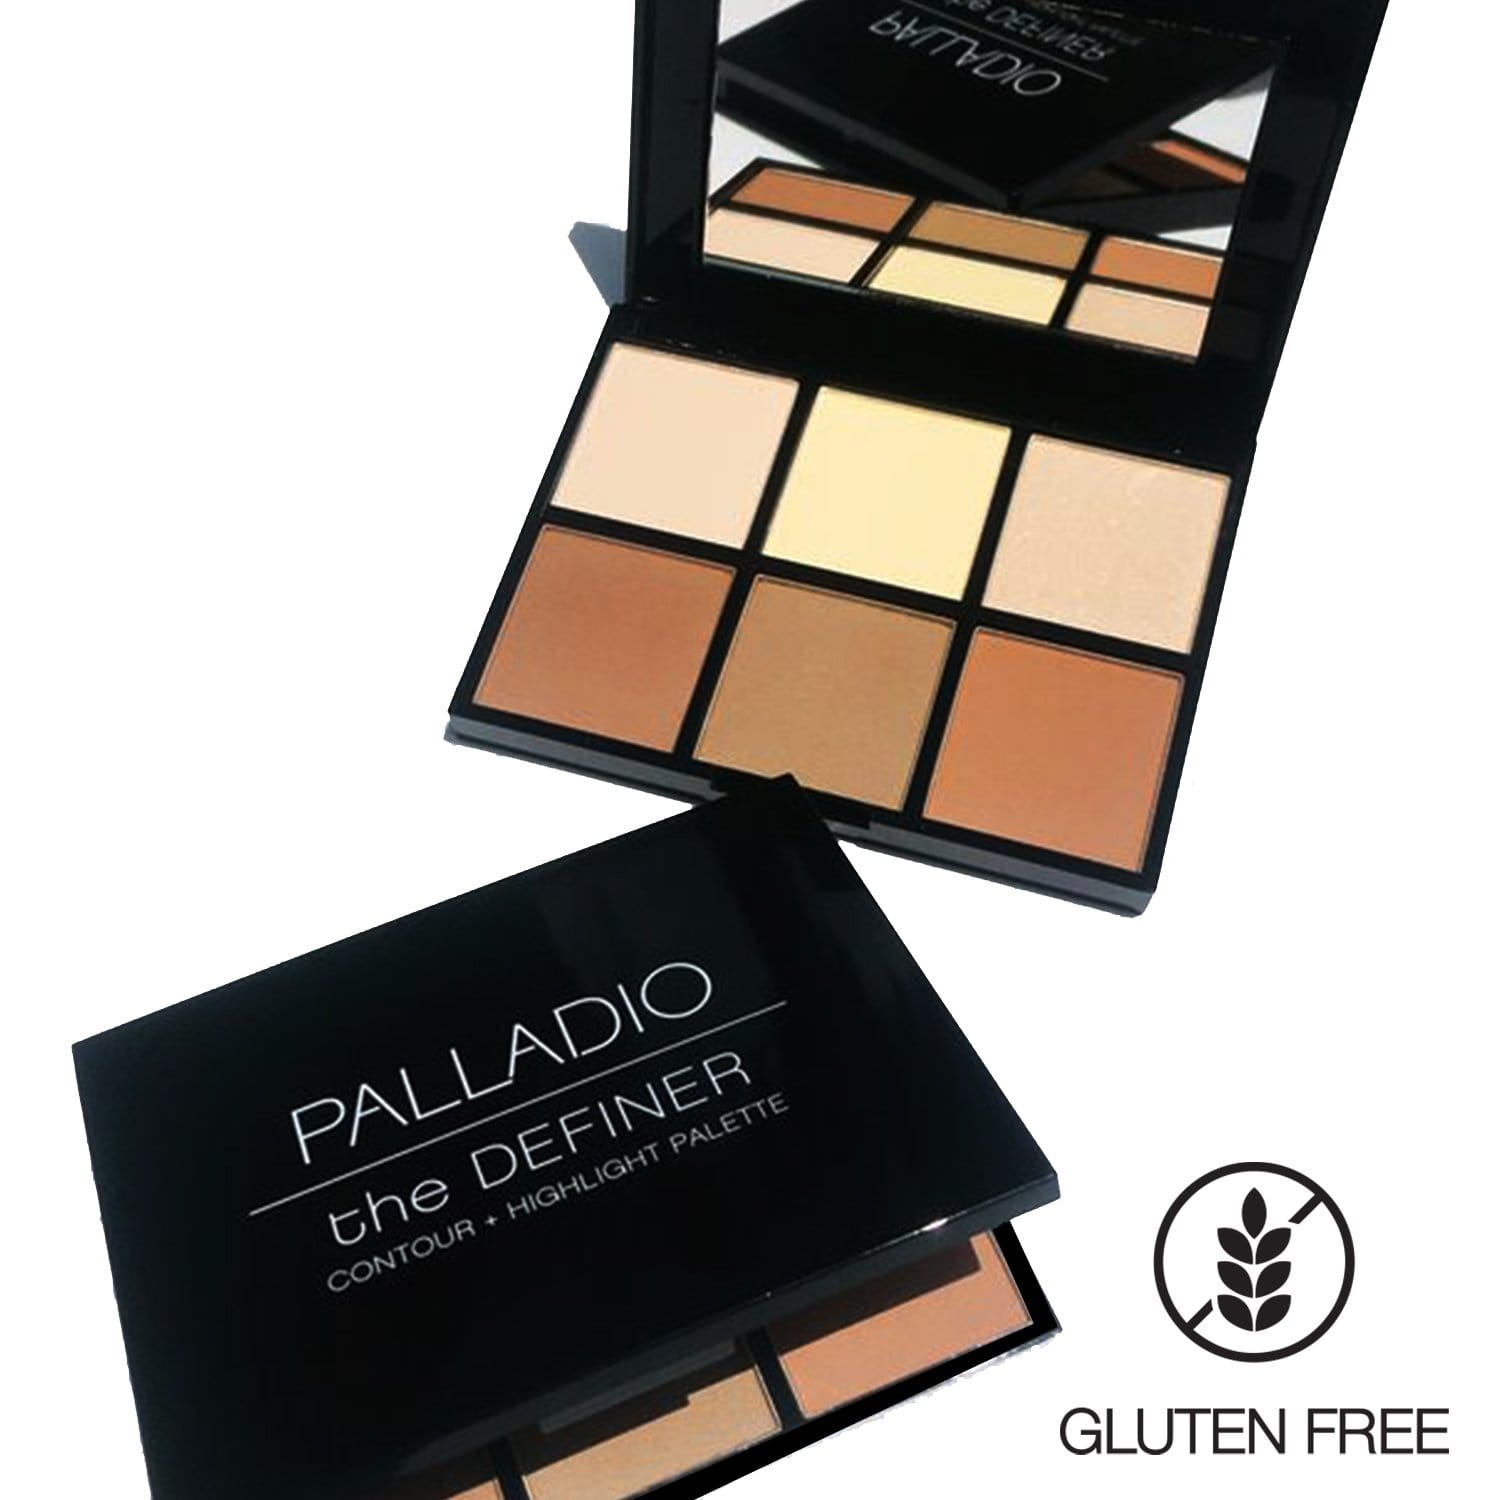 Palladio The Definer Contour & Highlight Palette